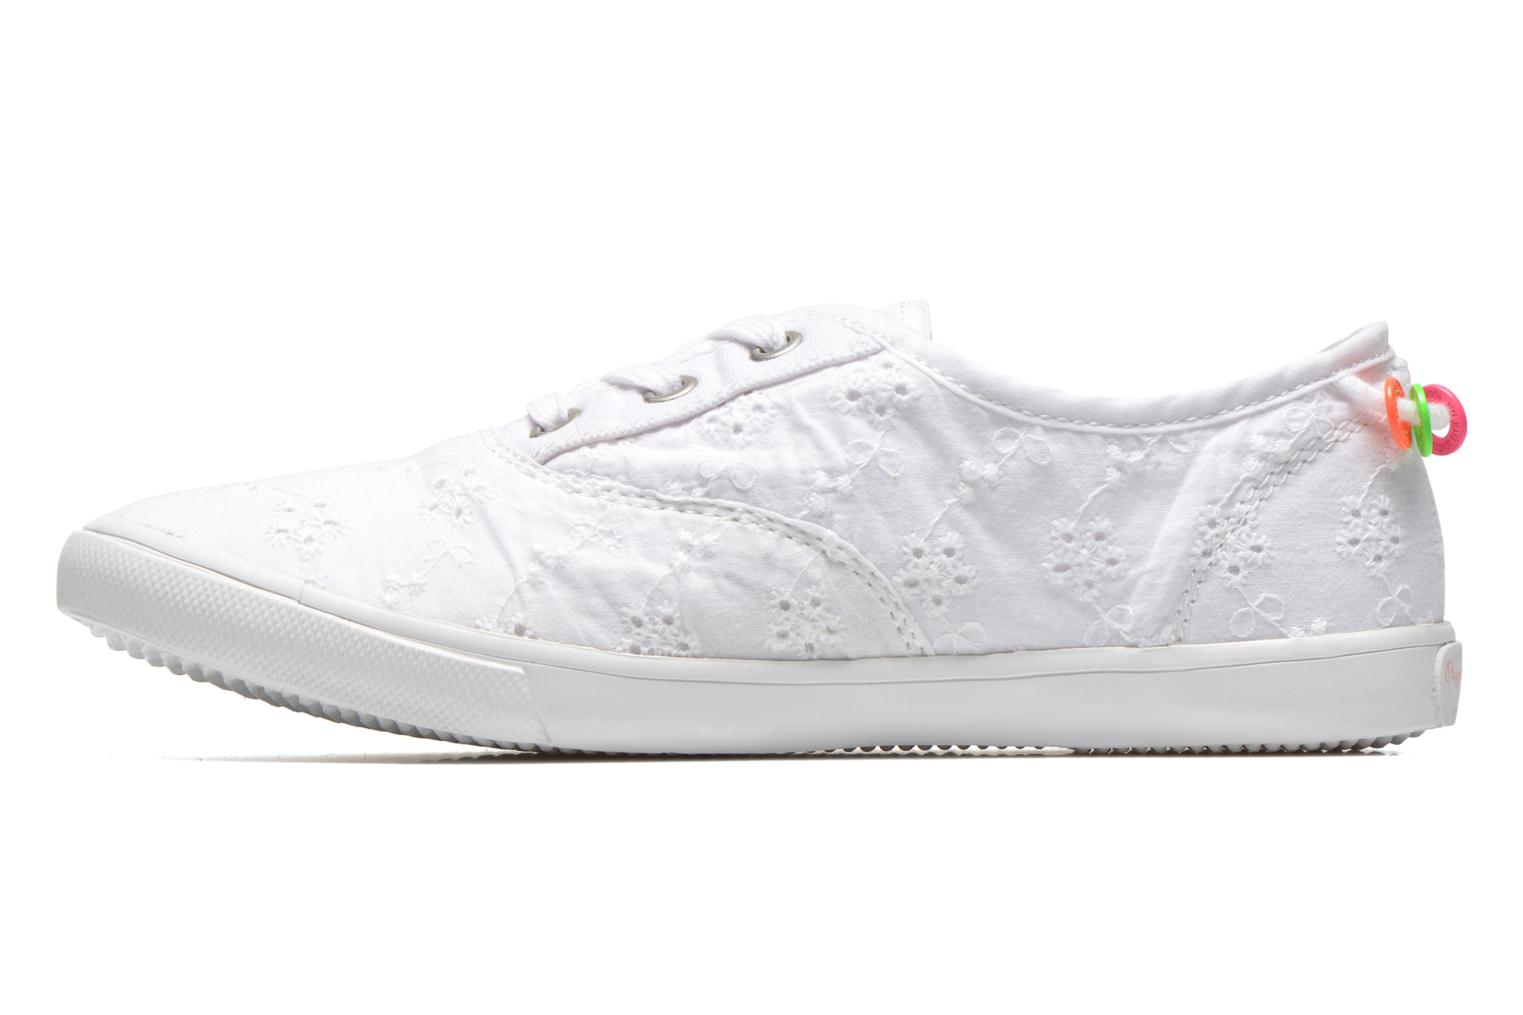 Soho Embroidery White